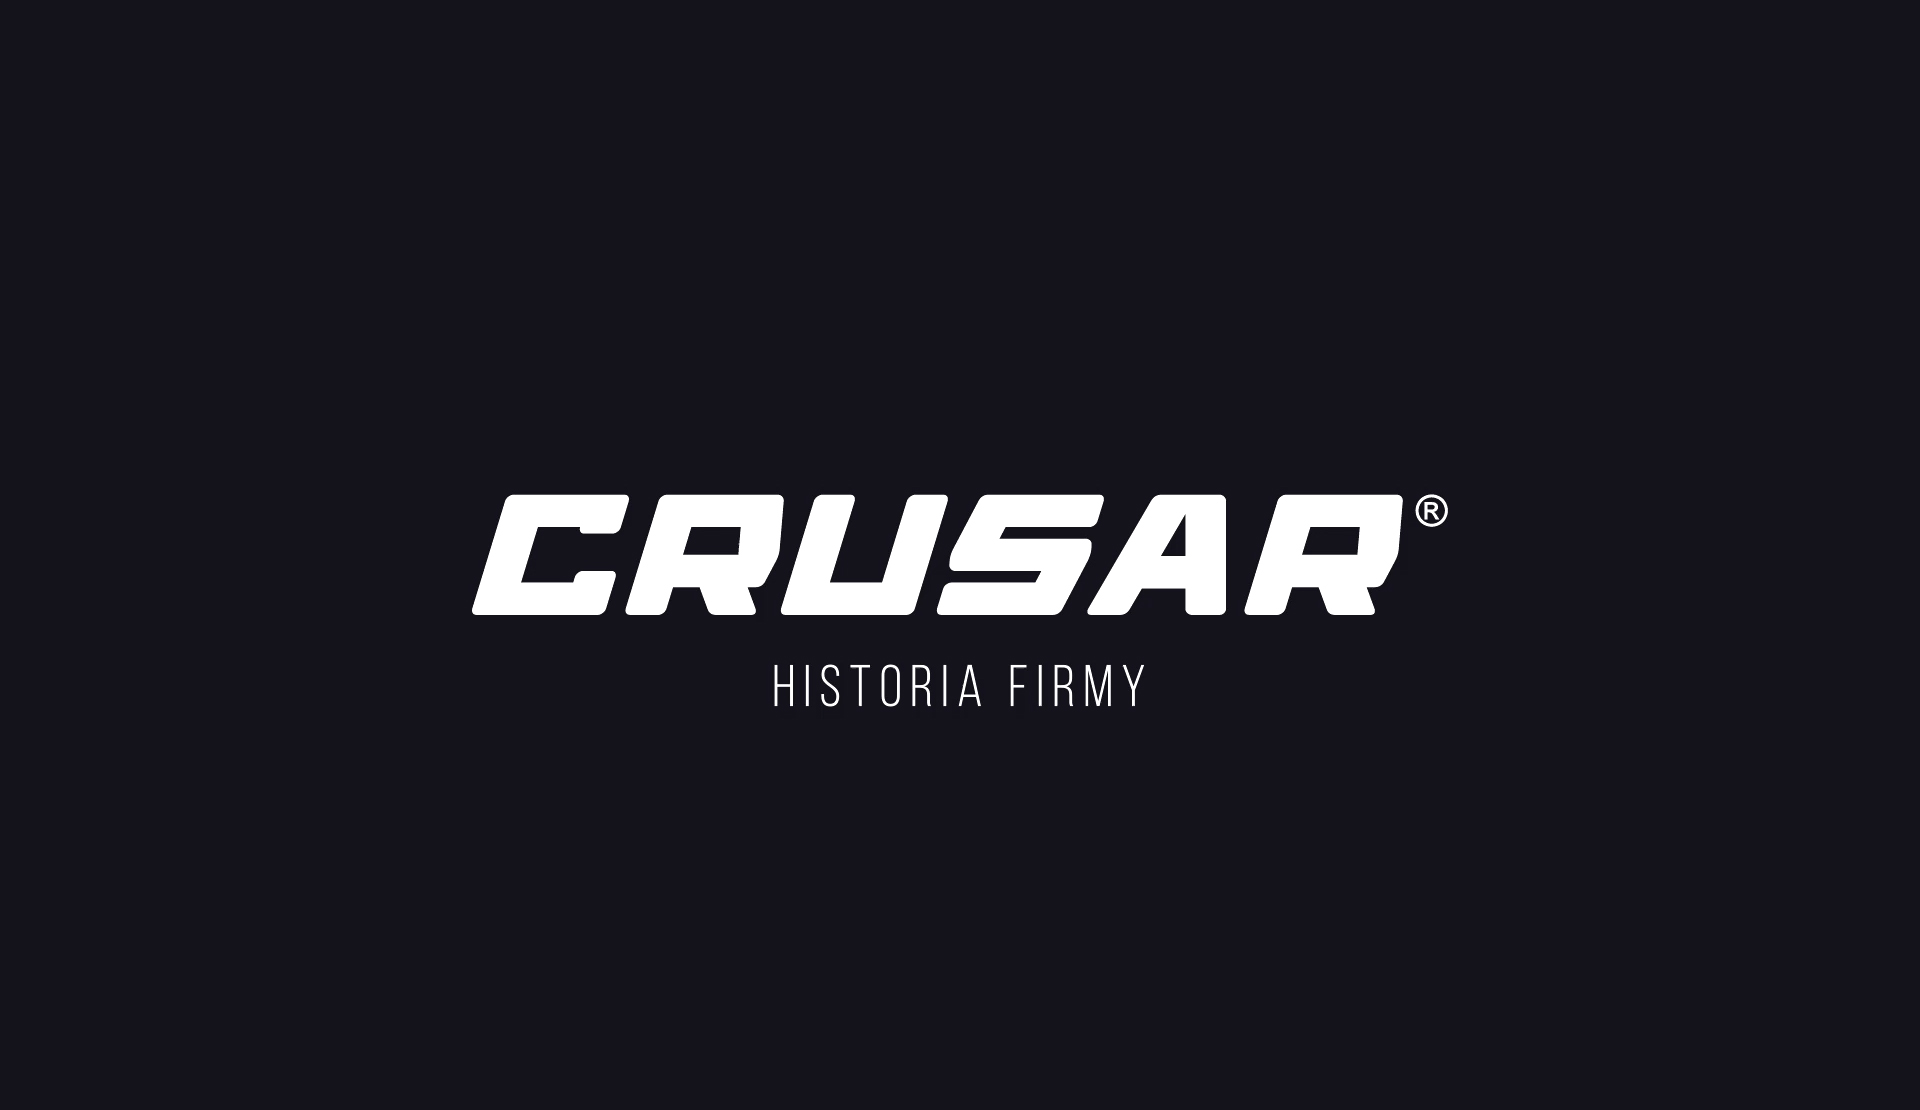 Crusar slide